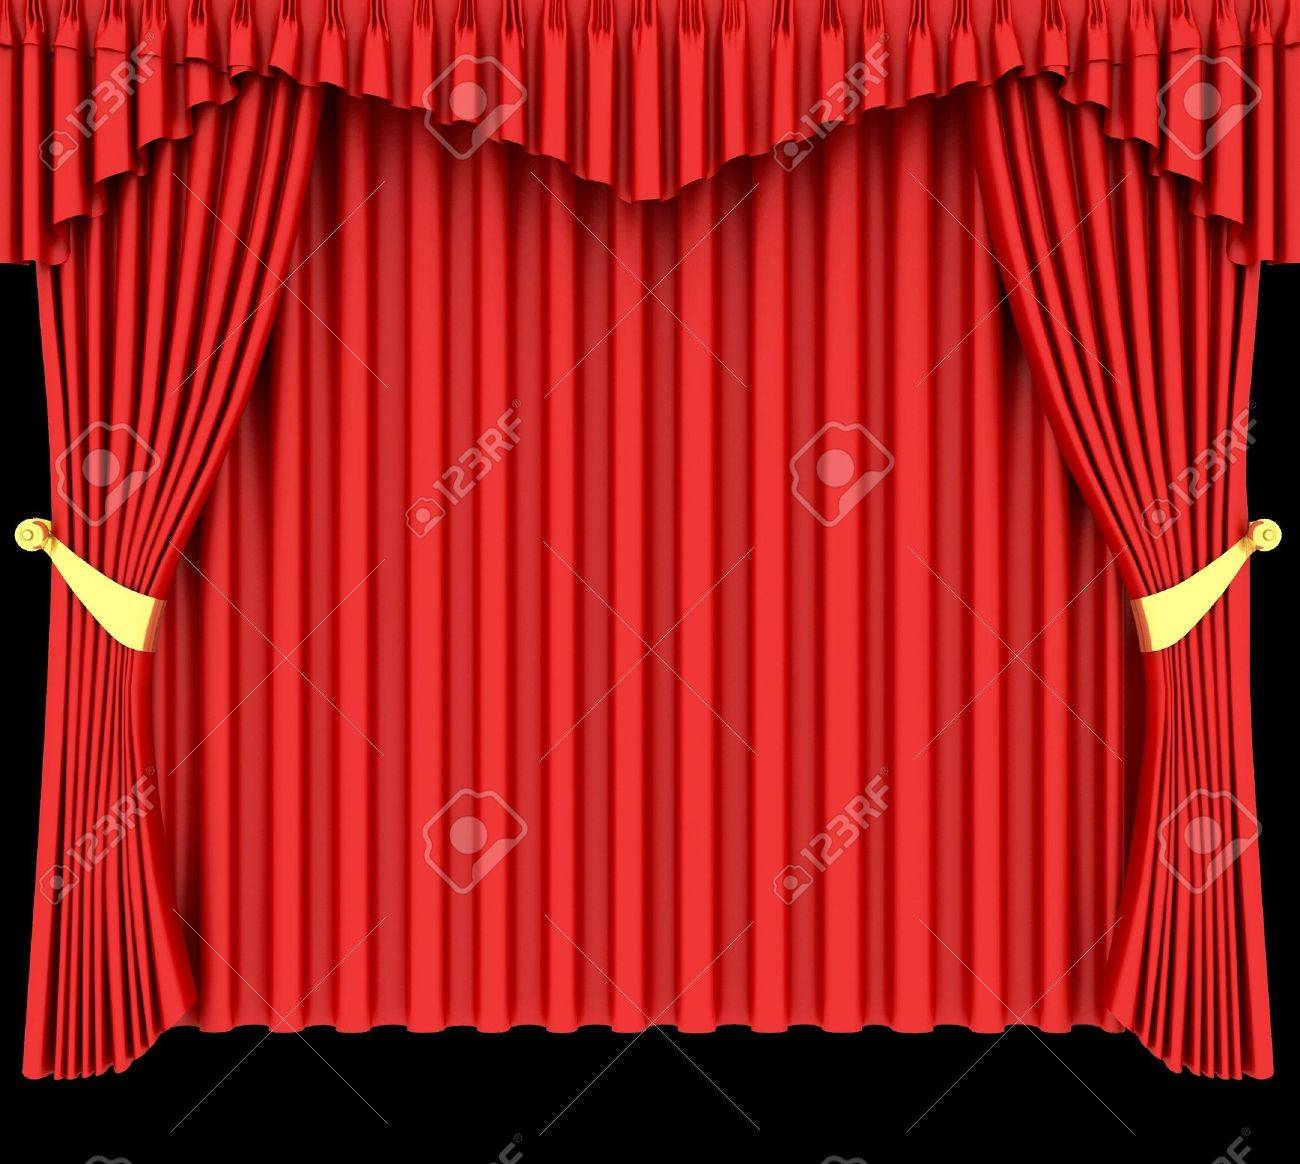 Theater curtains download free vector art stock graphics amp images - Trim Red Theater Curtain Isolated On Black Background